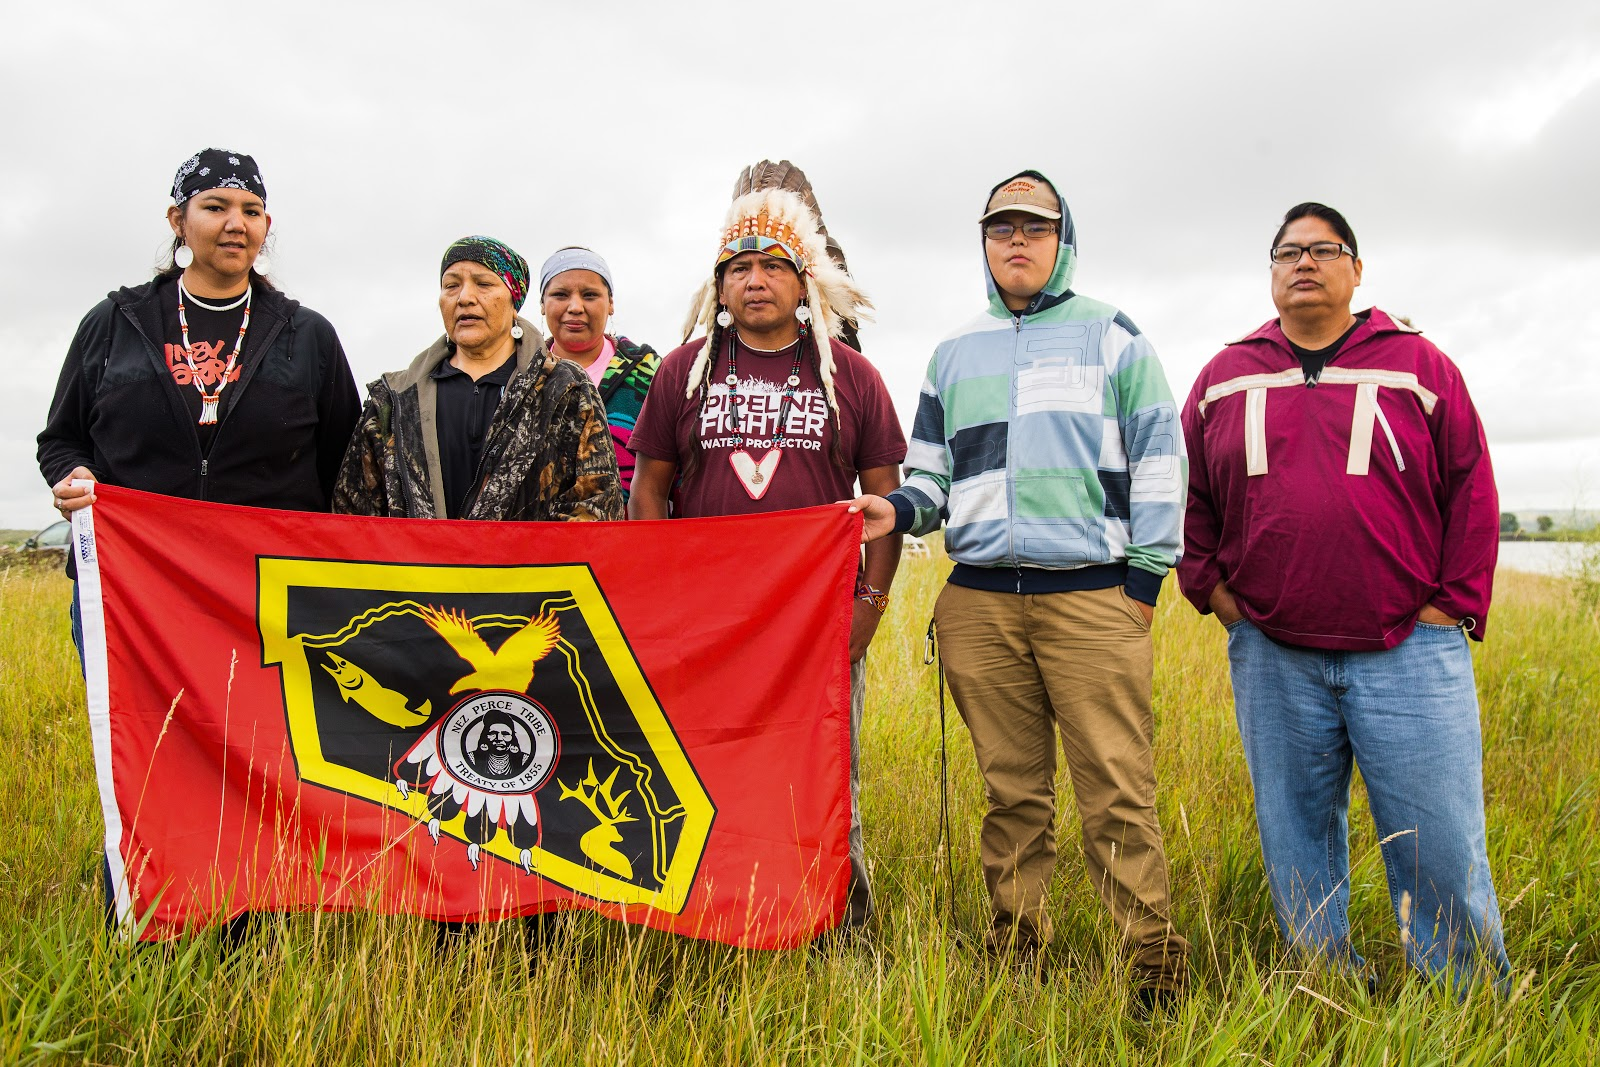 Nez Perce tribal members show their solidarity. (Photo: Alex Hamer)